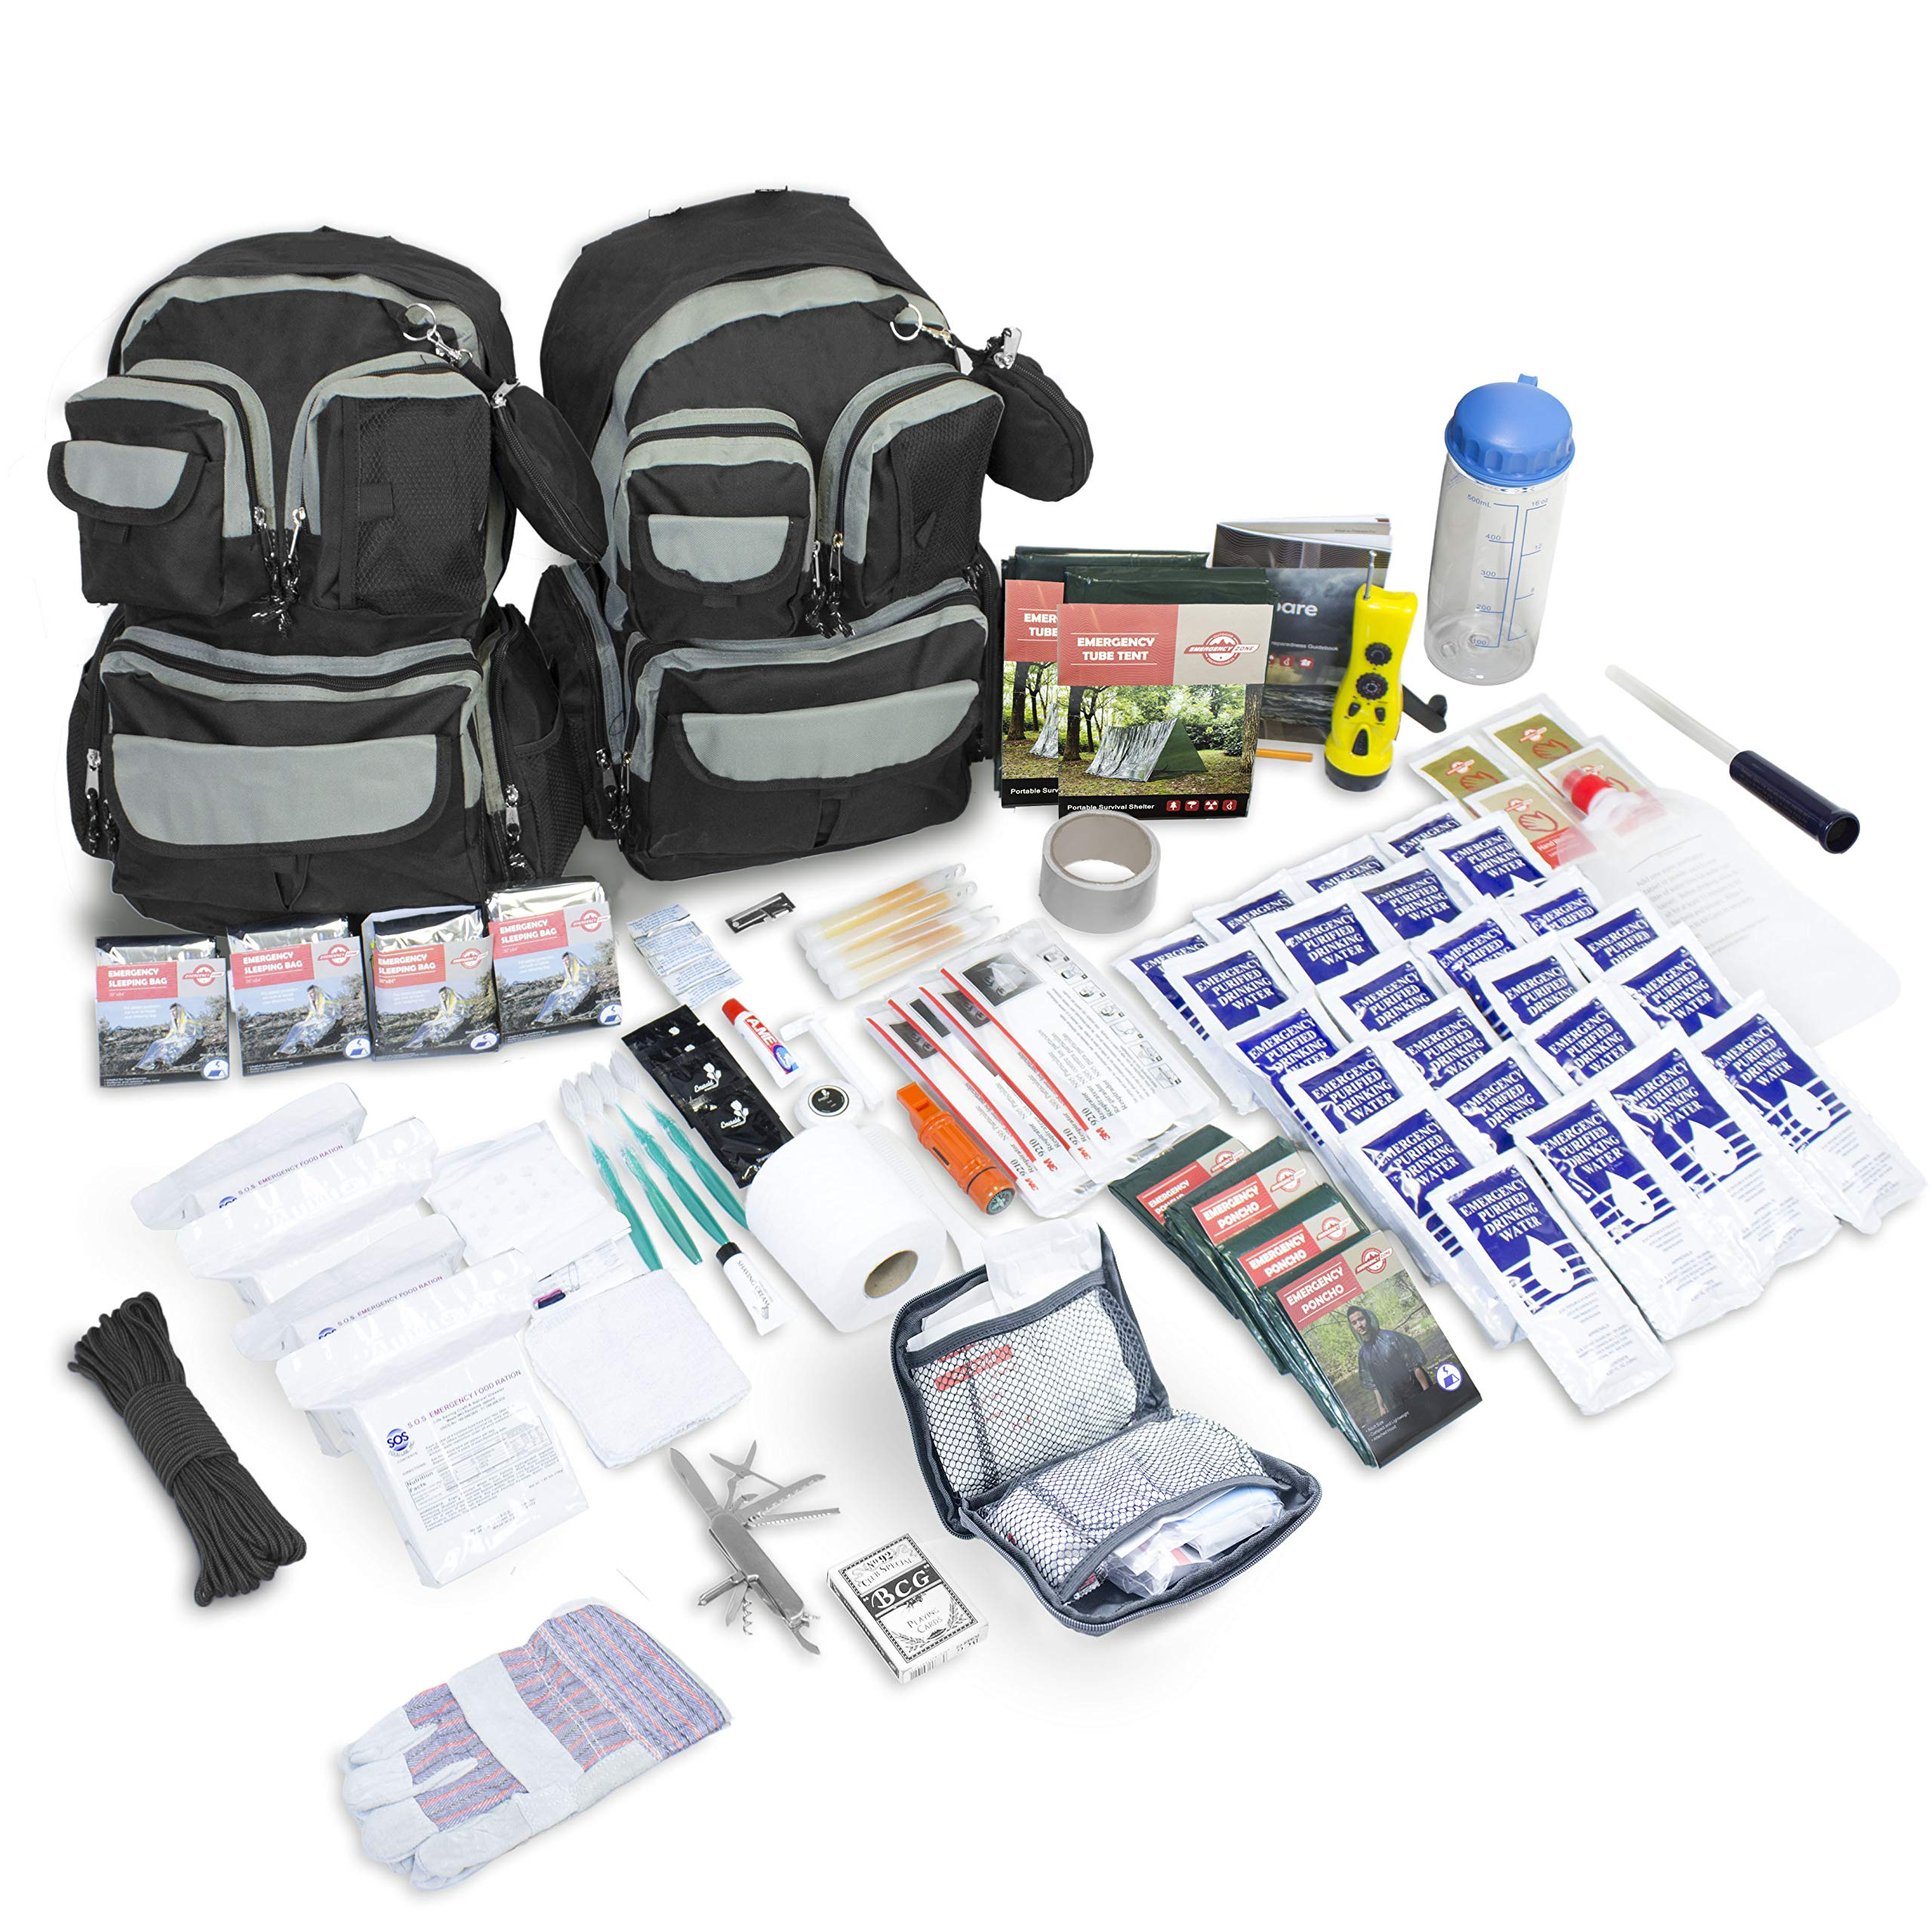 Emergency Zone 4 Person Urban Survival 72-Hour Bug Out/Go Bag | Perfect Way to Prepare Your Family | Be Ready for Disasters Like Hurricanes, Earthquake, Wildfire, Floods by Emergency Zone